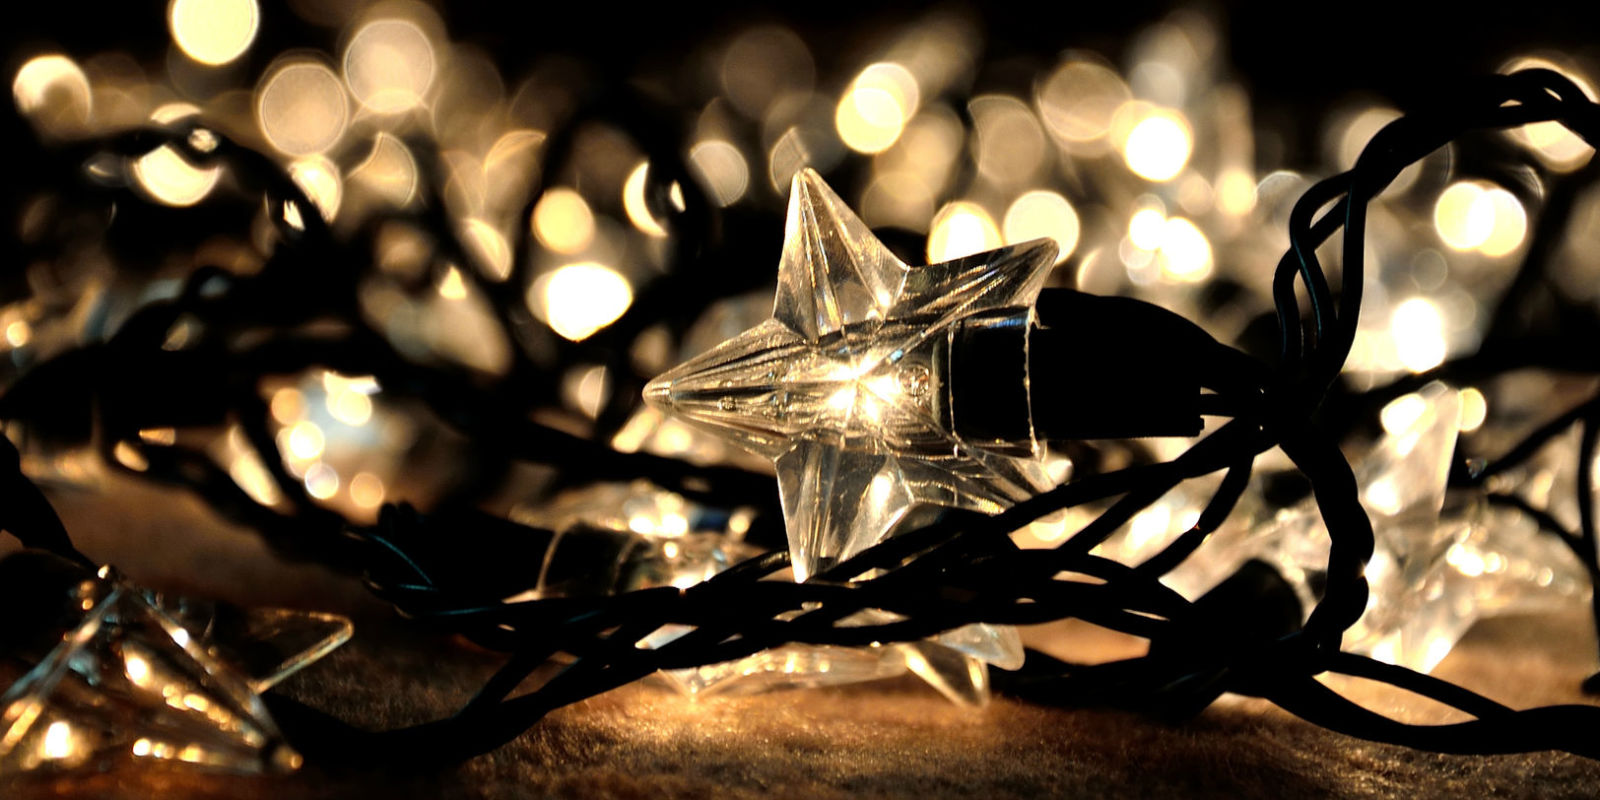 Christmas lights as decoration year round - A Rope Of Tangled Christmas Fairy Lights In The Shape Of Stars Are Scattered On The